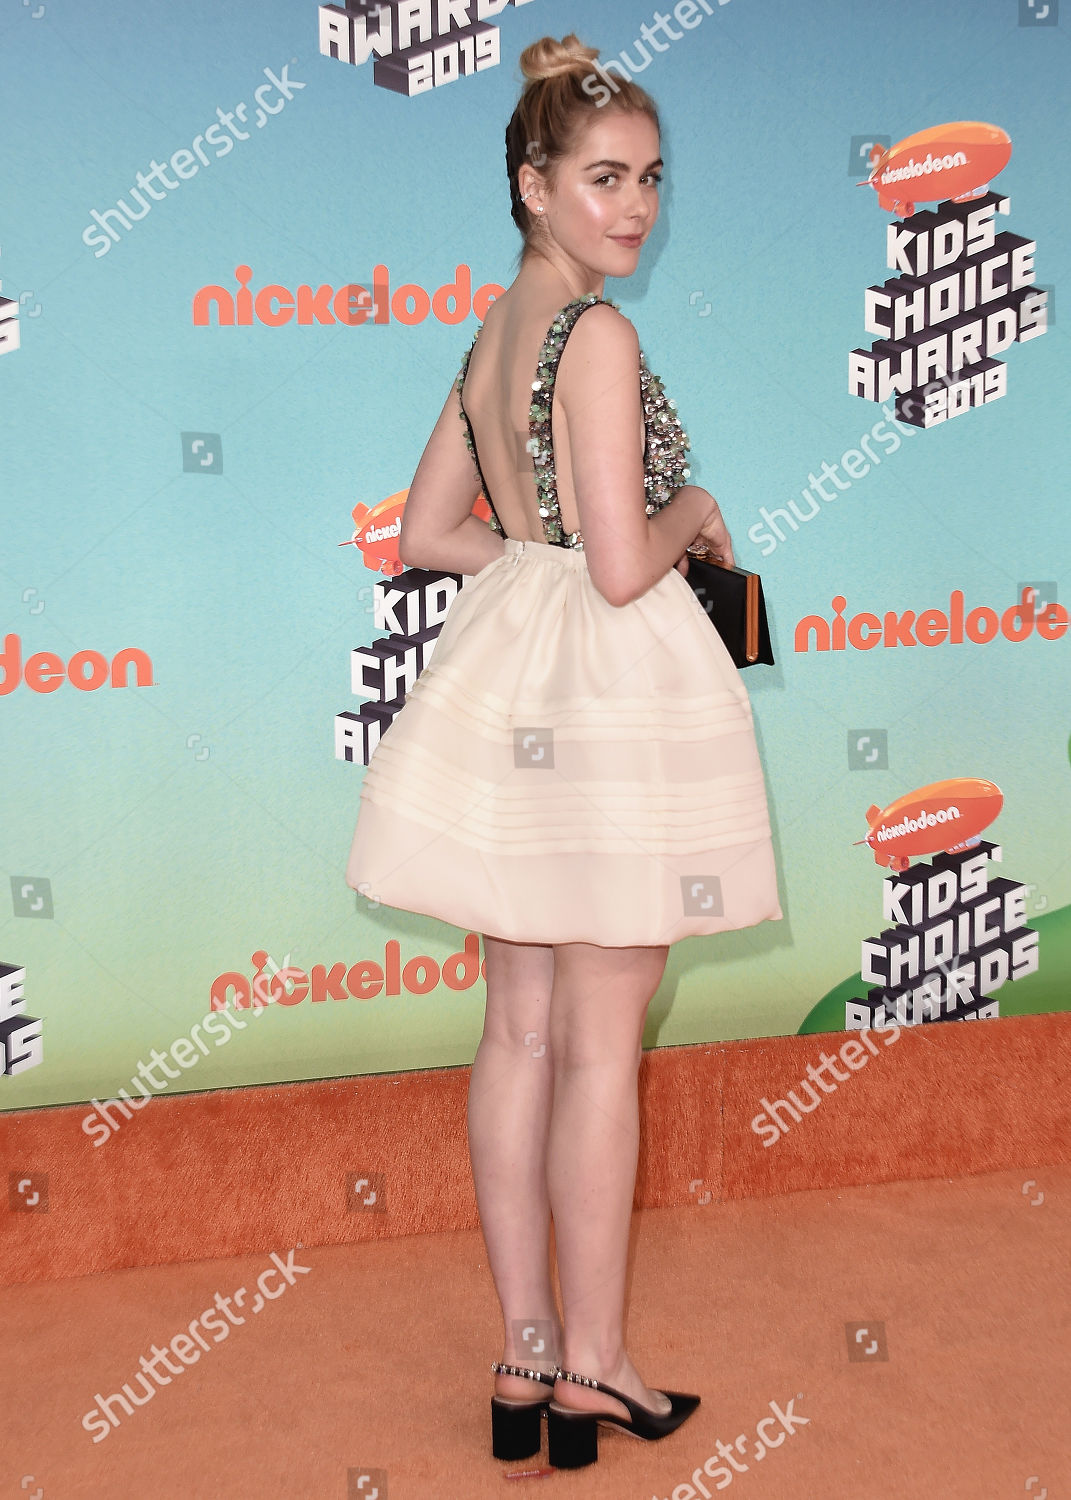 35722f54 Nickelodeon Kids' Choice Awards, Arrivals, Galen Center, Los Angeles, USA  Stock Image by Scott Kirkland for editorial use, Mar 23, 2019